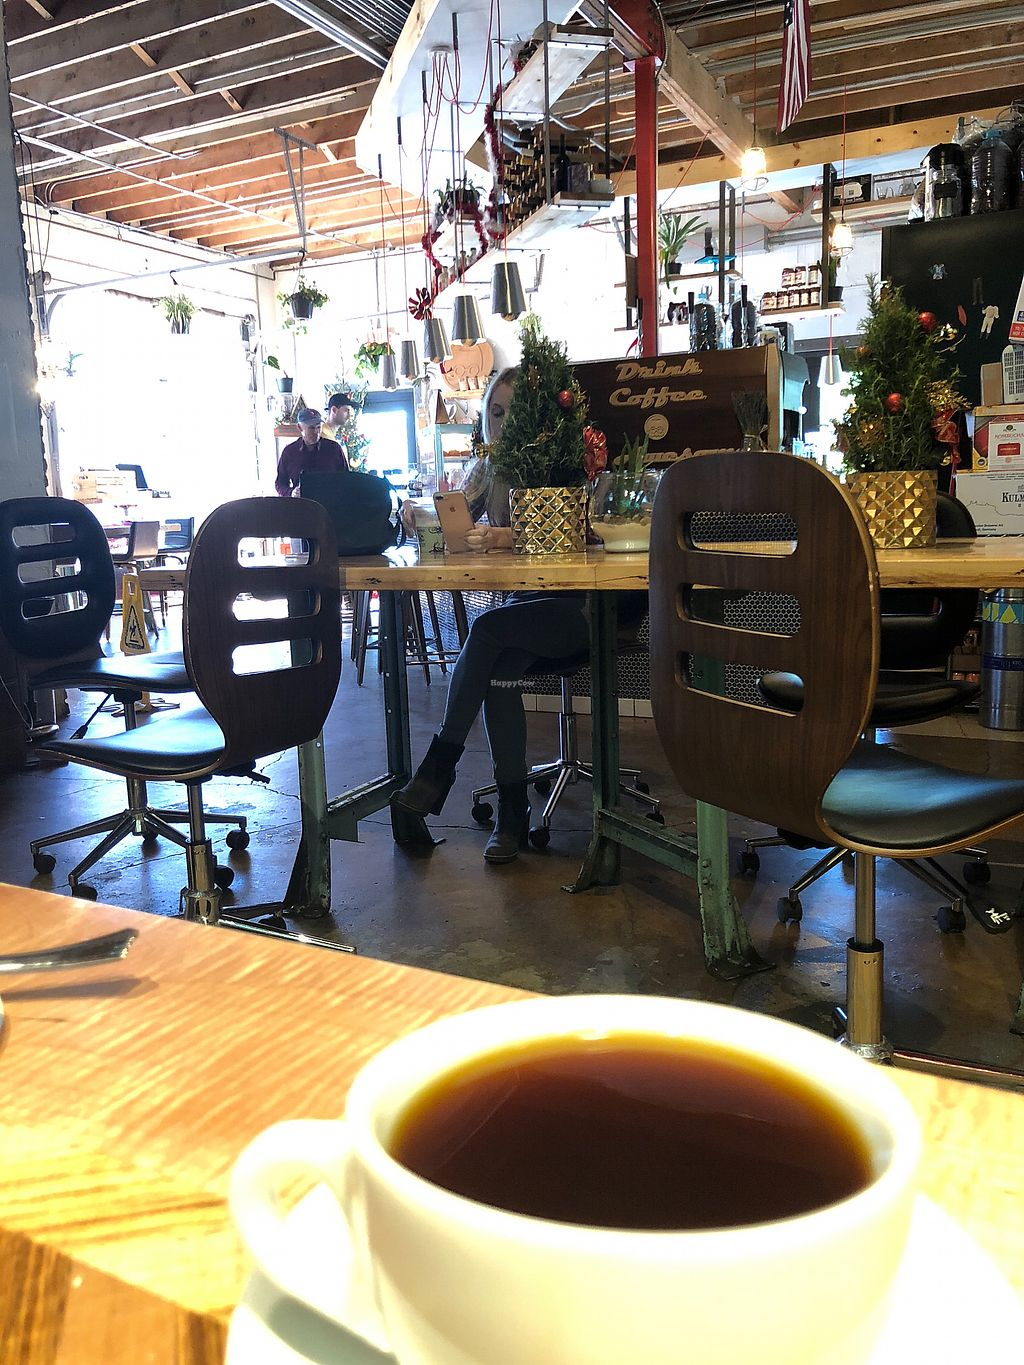 """Photo of Grind Coffee Project   by <a href=""""/members/profile/AJBaugus"""">AJBaugus</a> <br/>Great vegan food  <br/> December 10, 2017  - <a href='/contact/abuse/image/72139/334362'>Report</a>"""